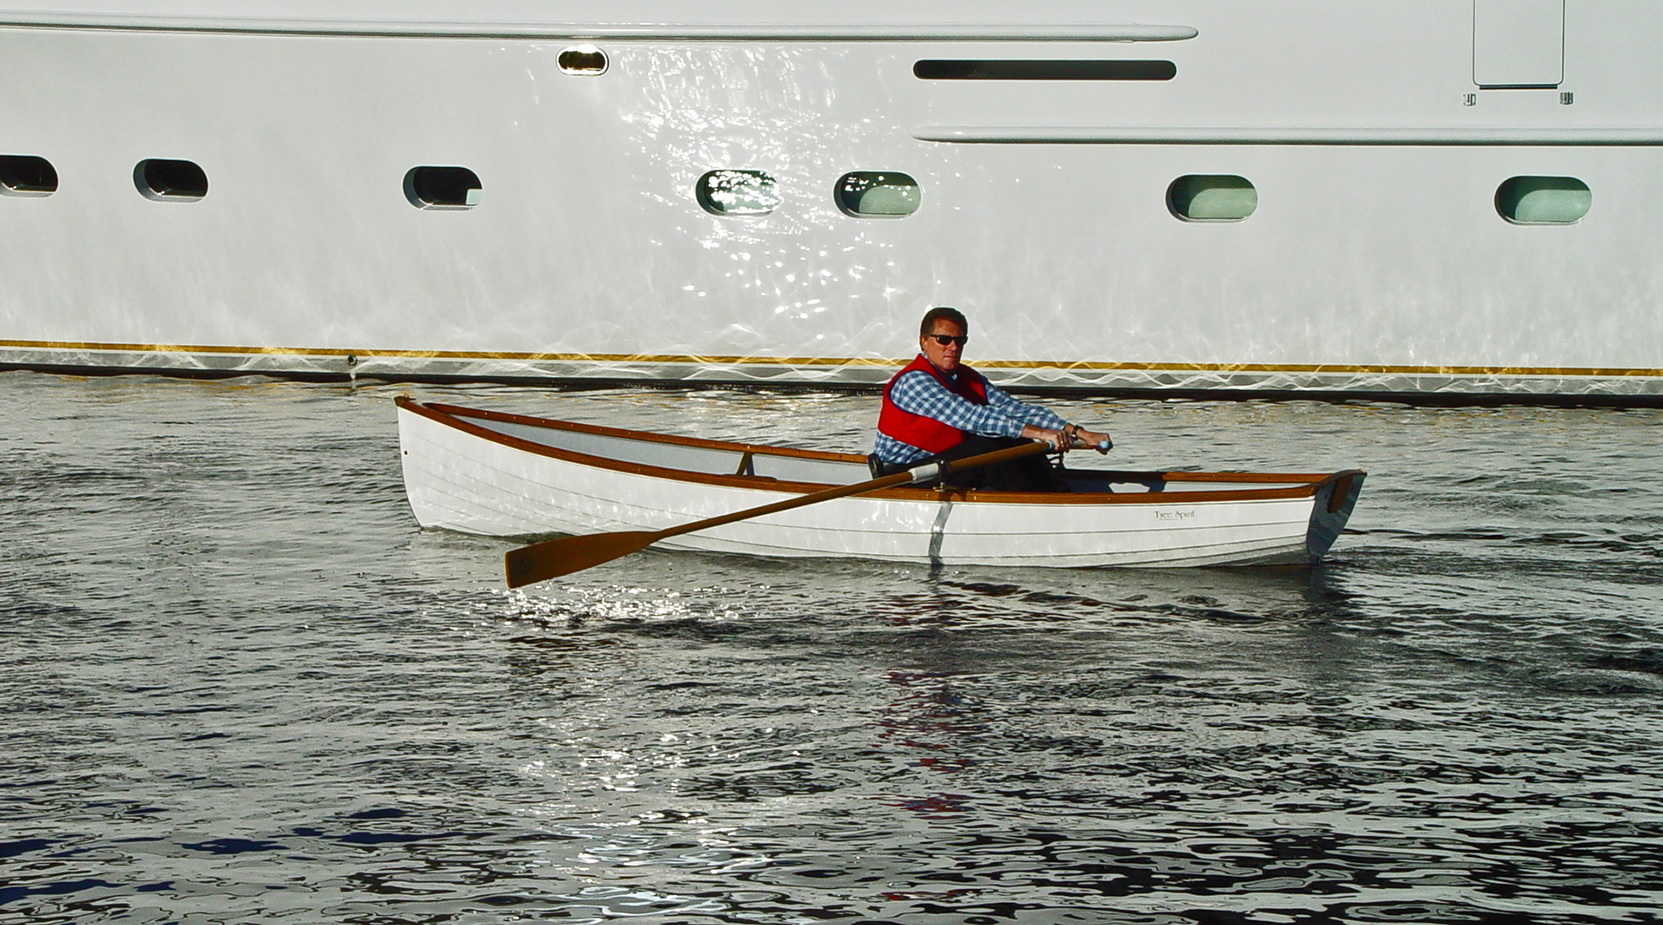 whitehall-tyee-spirit-14-slide-seat-rowing-boats-DSC03259-1663x925